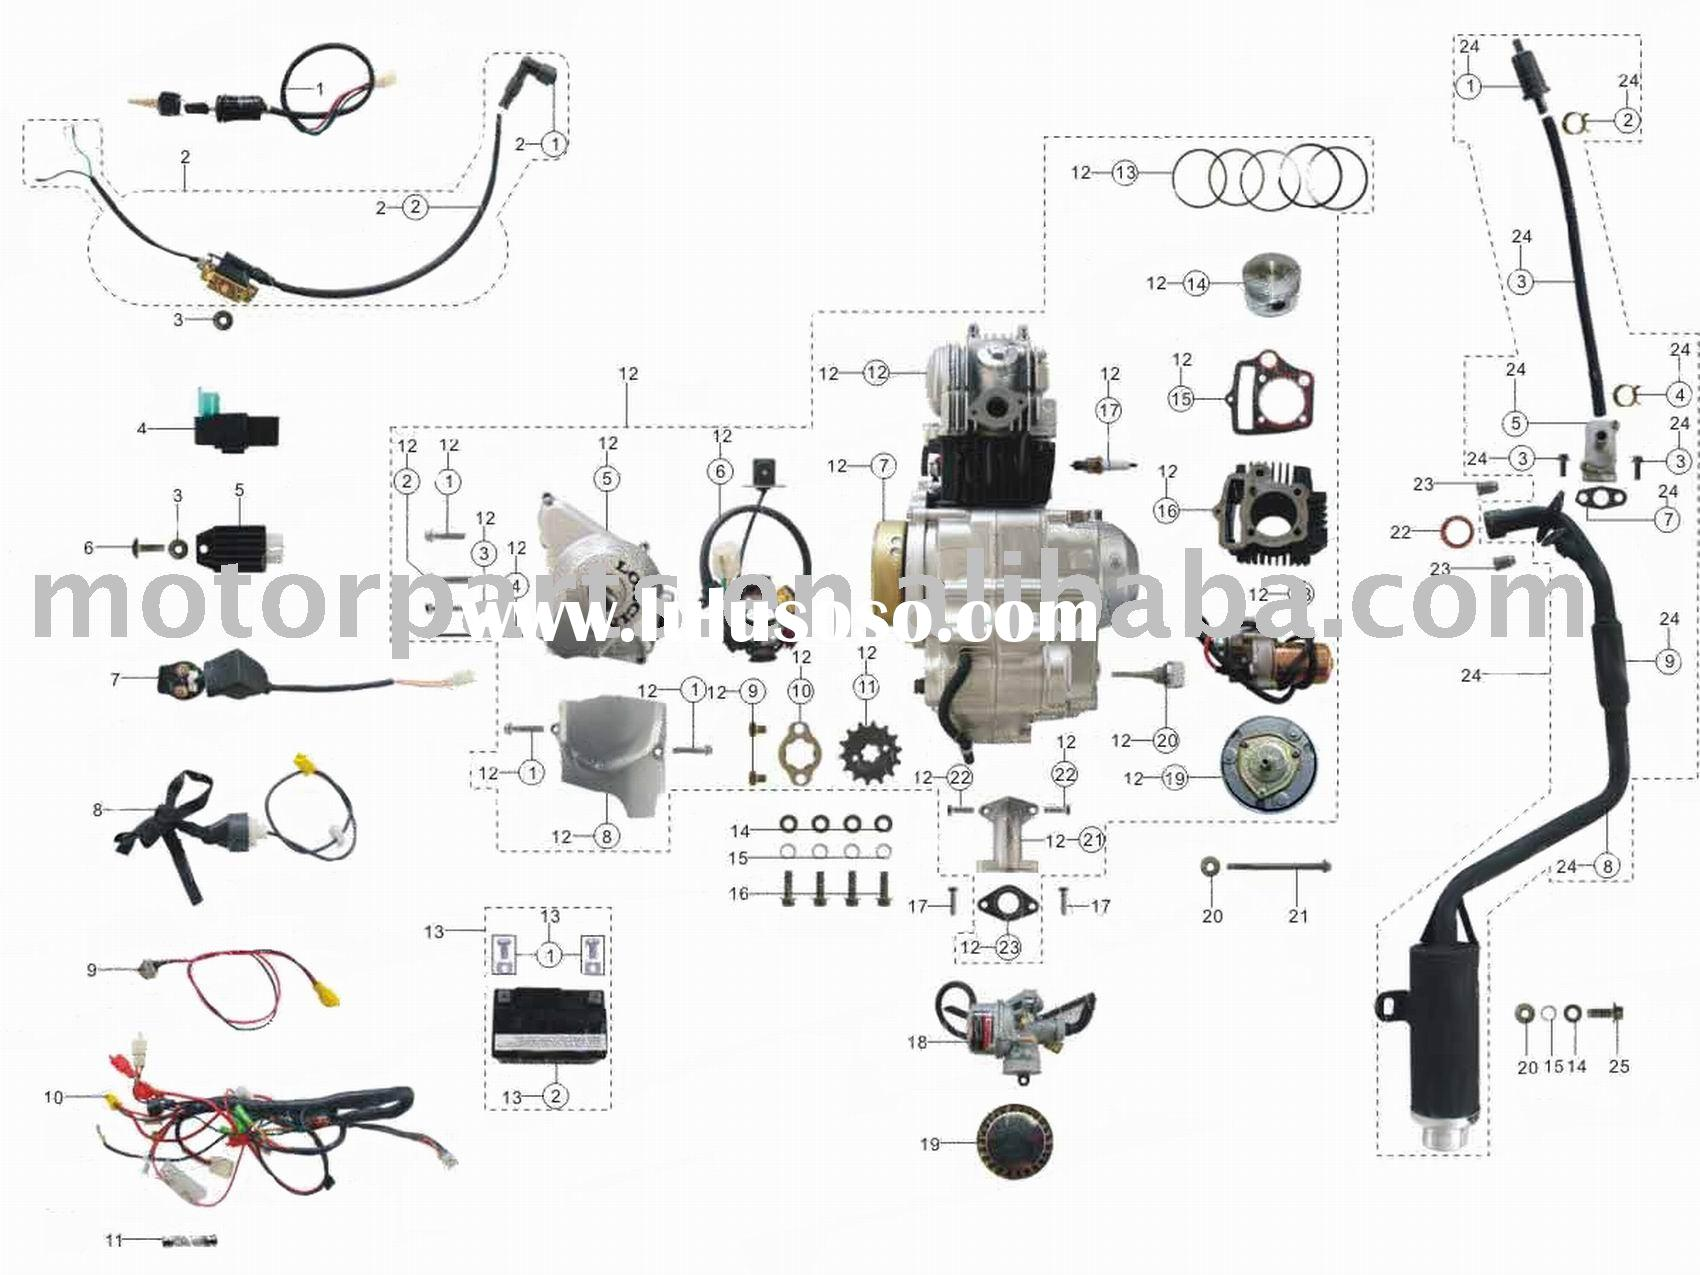 mini panther 110cc atv wiring diagram  mini panther 110cc atv wiring diagram manufacturers in